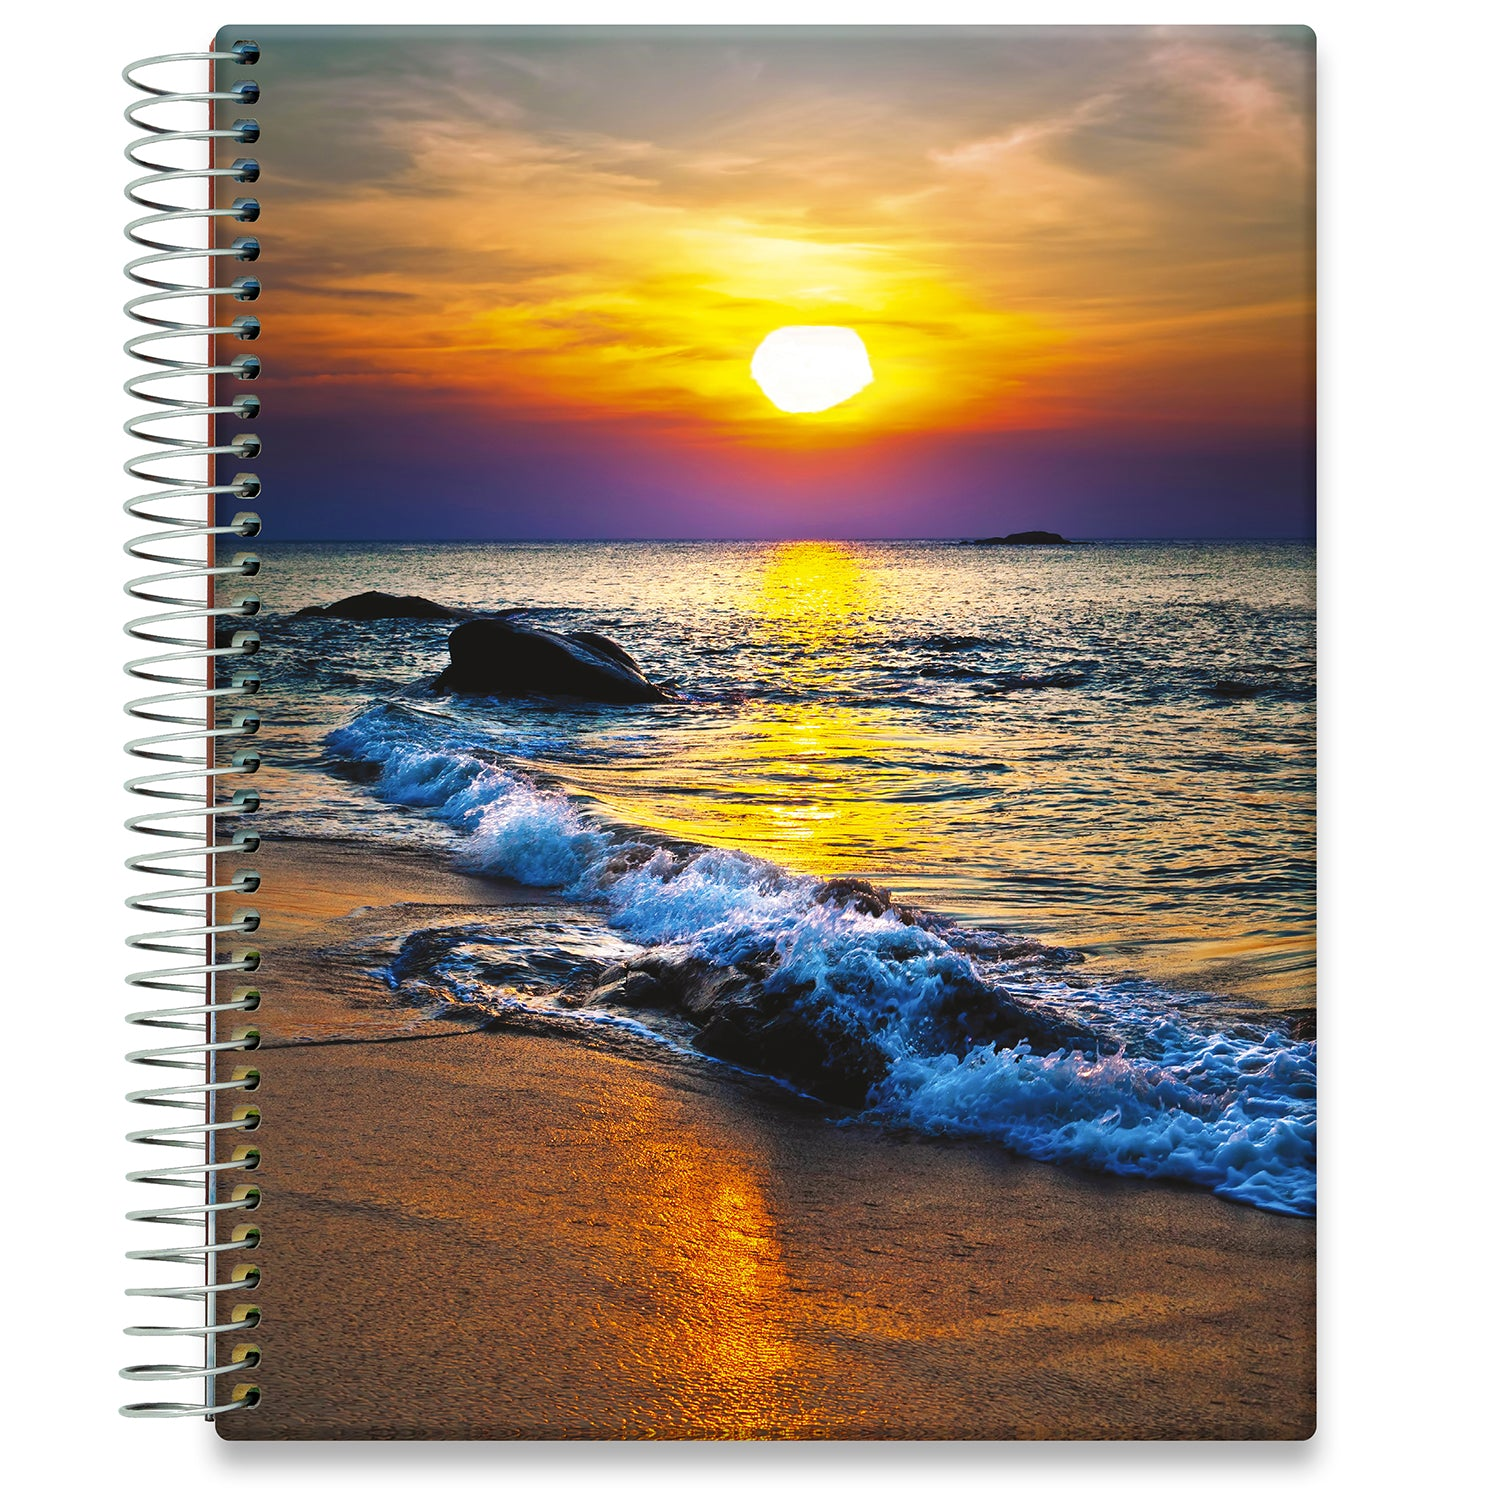 Planner 2021-2022 • April 2021 to June 2022 Academic Year • 8.5x11 Hardcover • Sea Sunset Cover